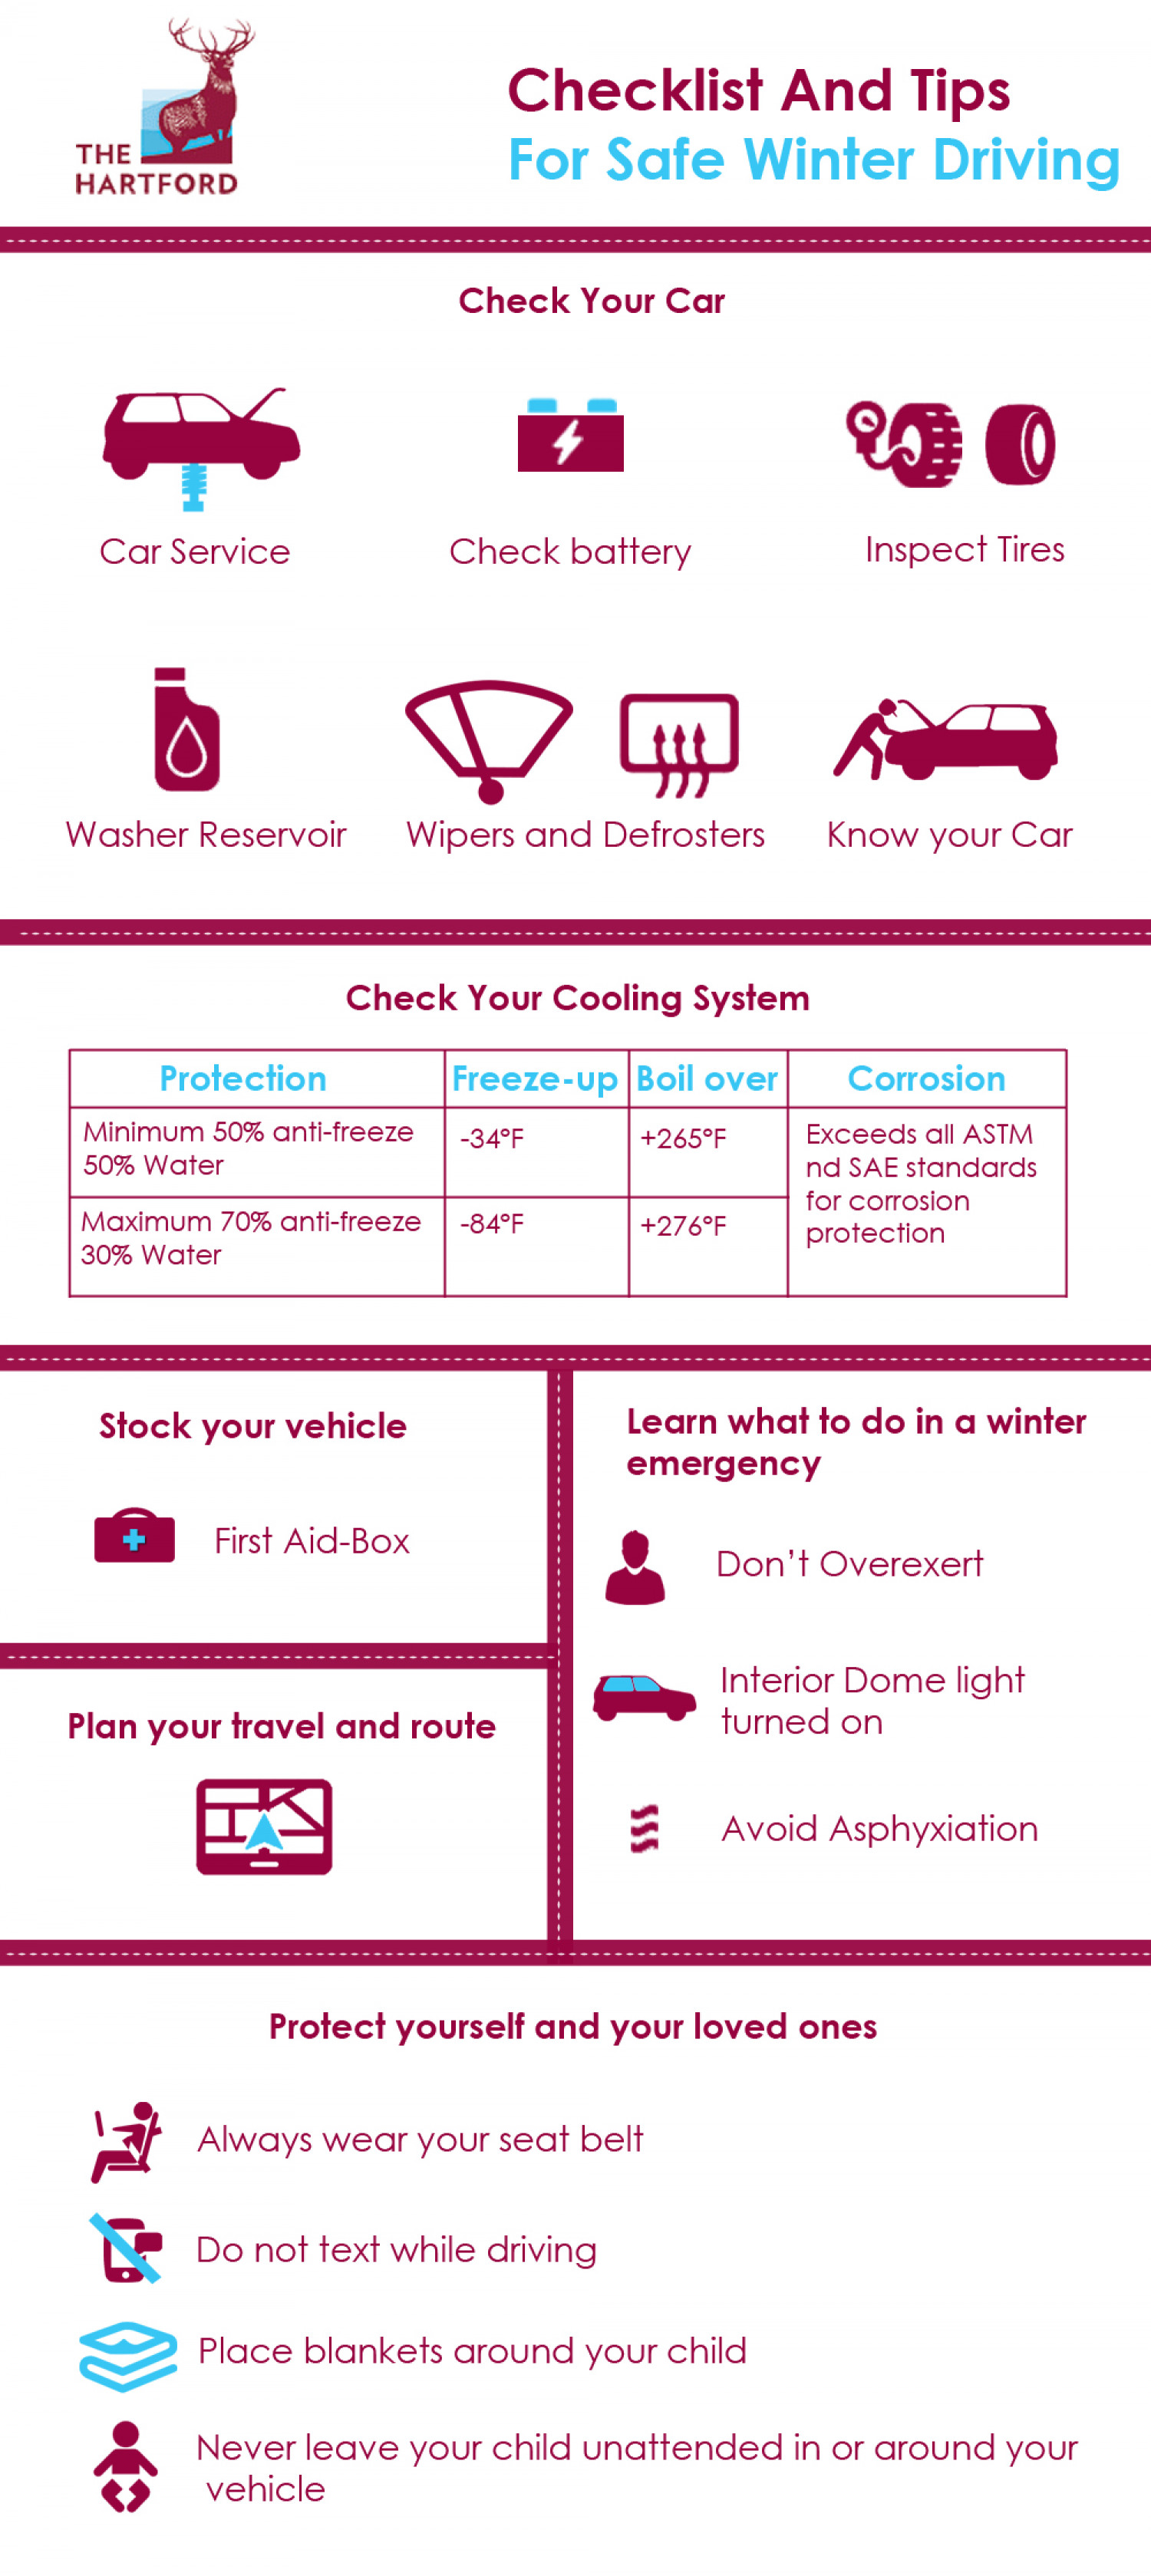 Checklist and Tips for Safe Winter Driving Infographic